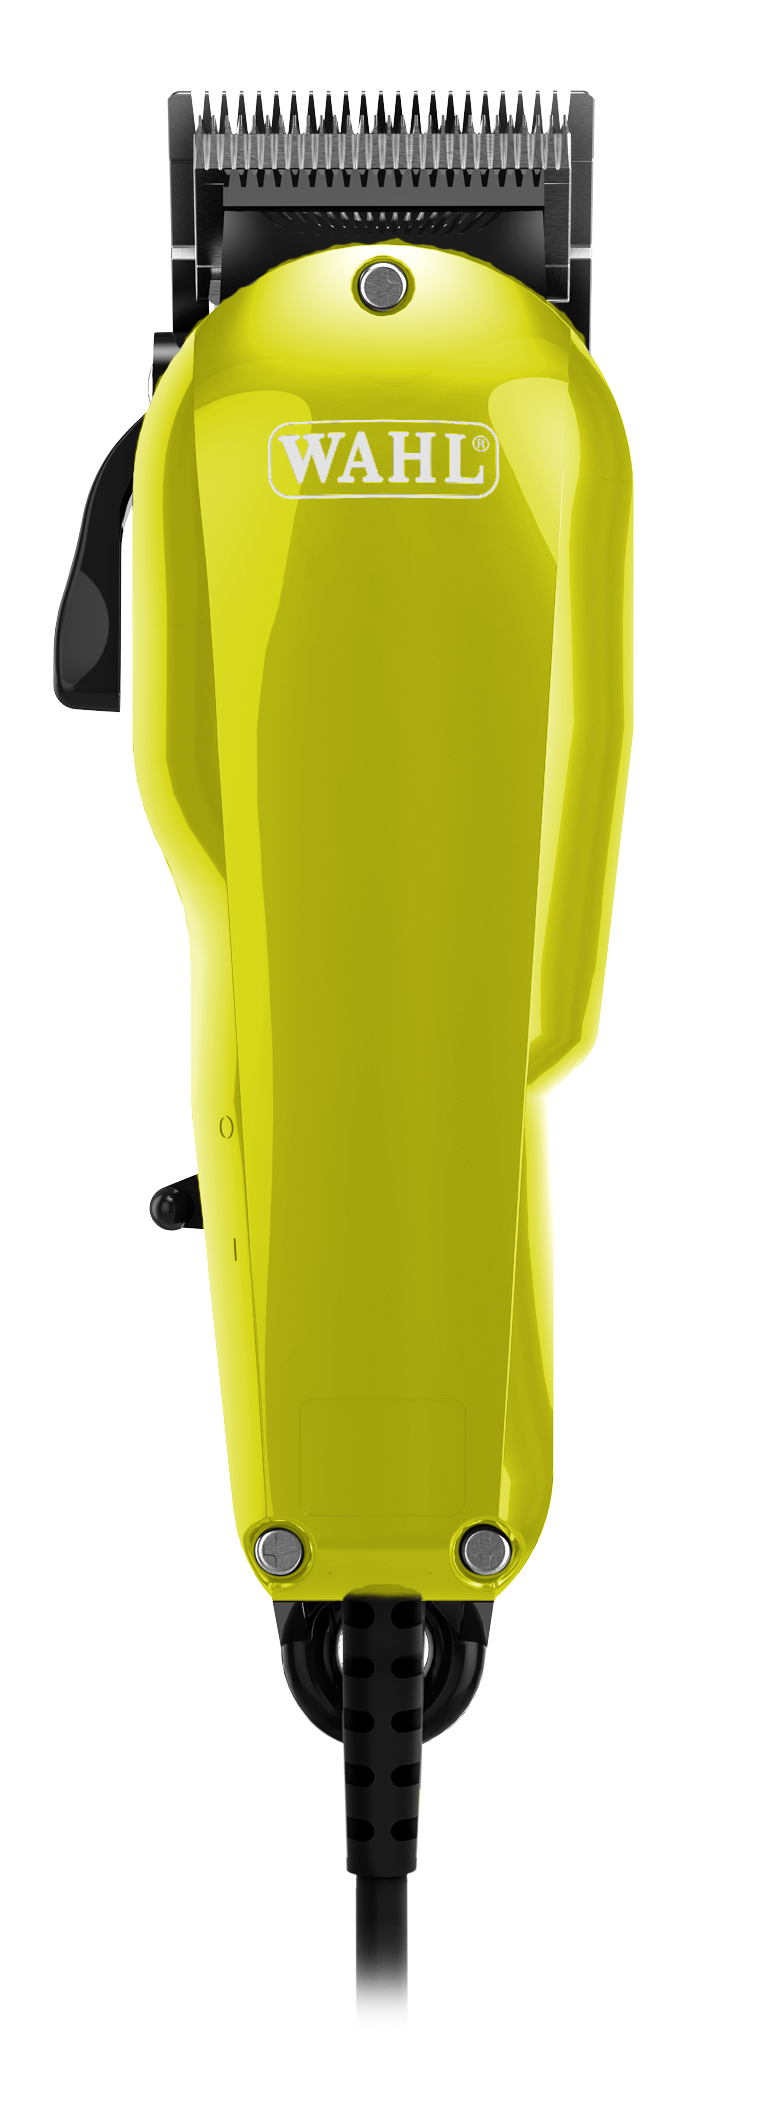 Wahl Taper 2000 Lime Professional Corded Hair Clippers - WA8472-532L (Lime)